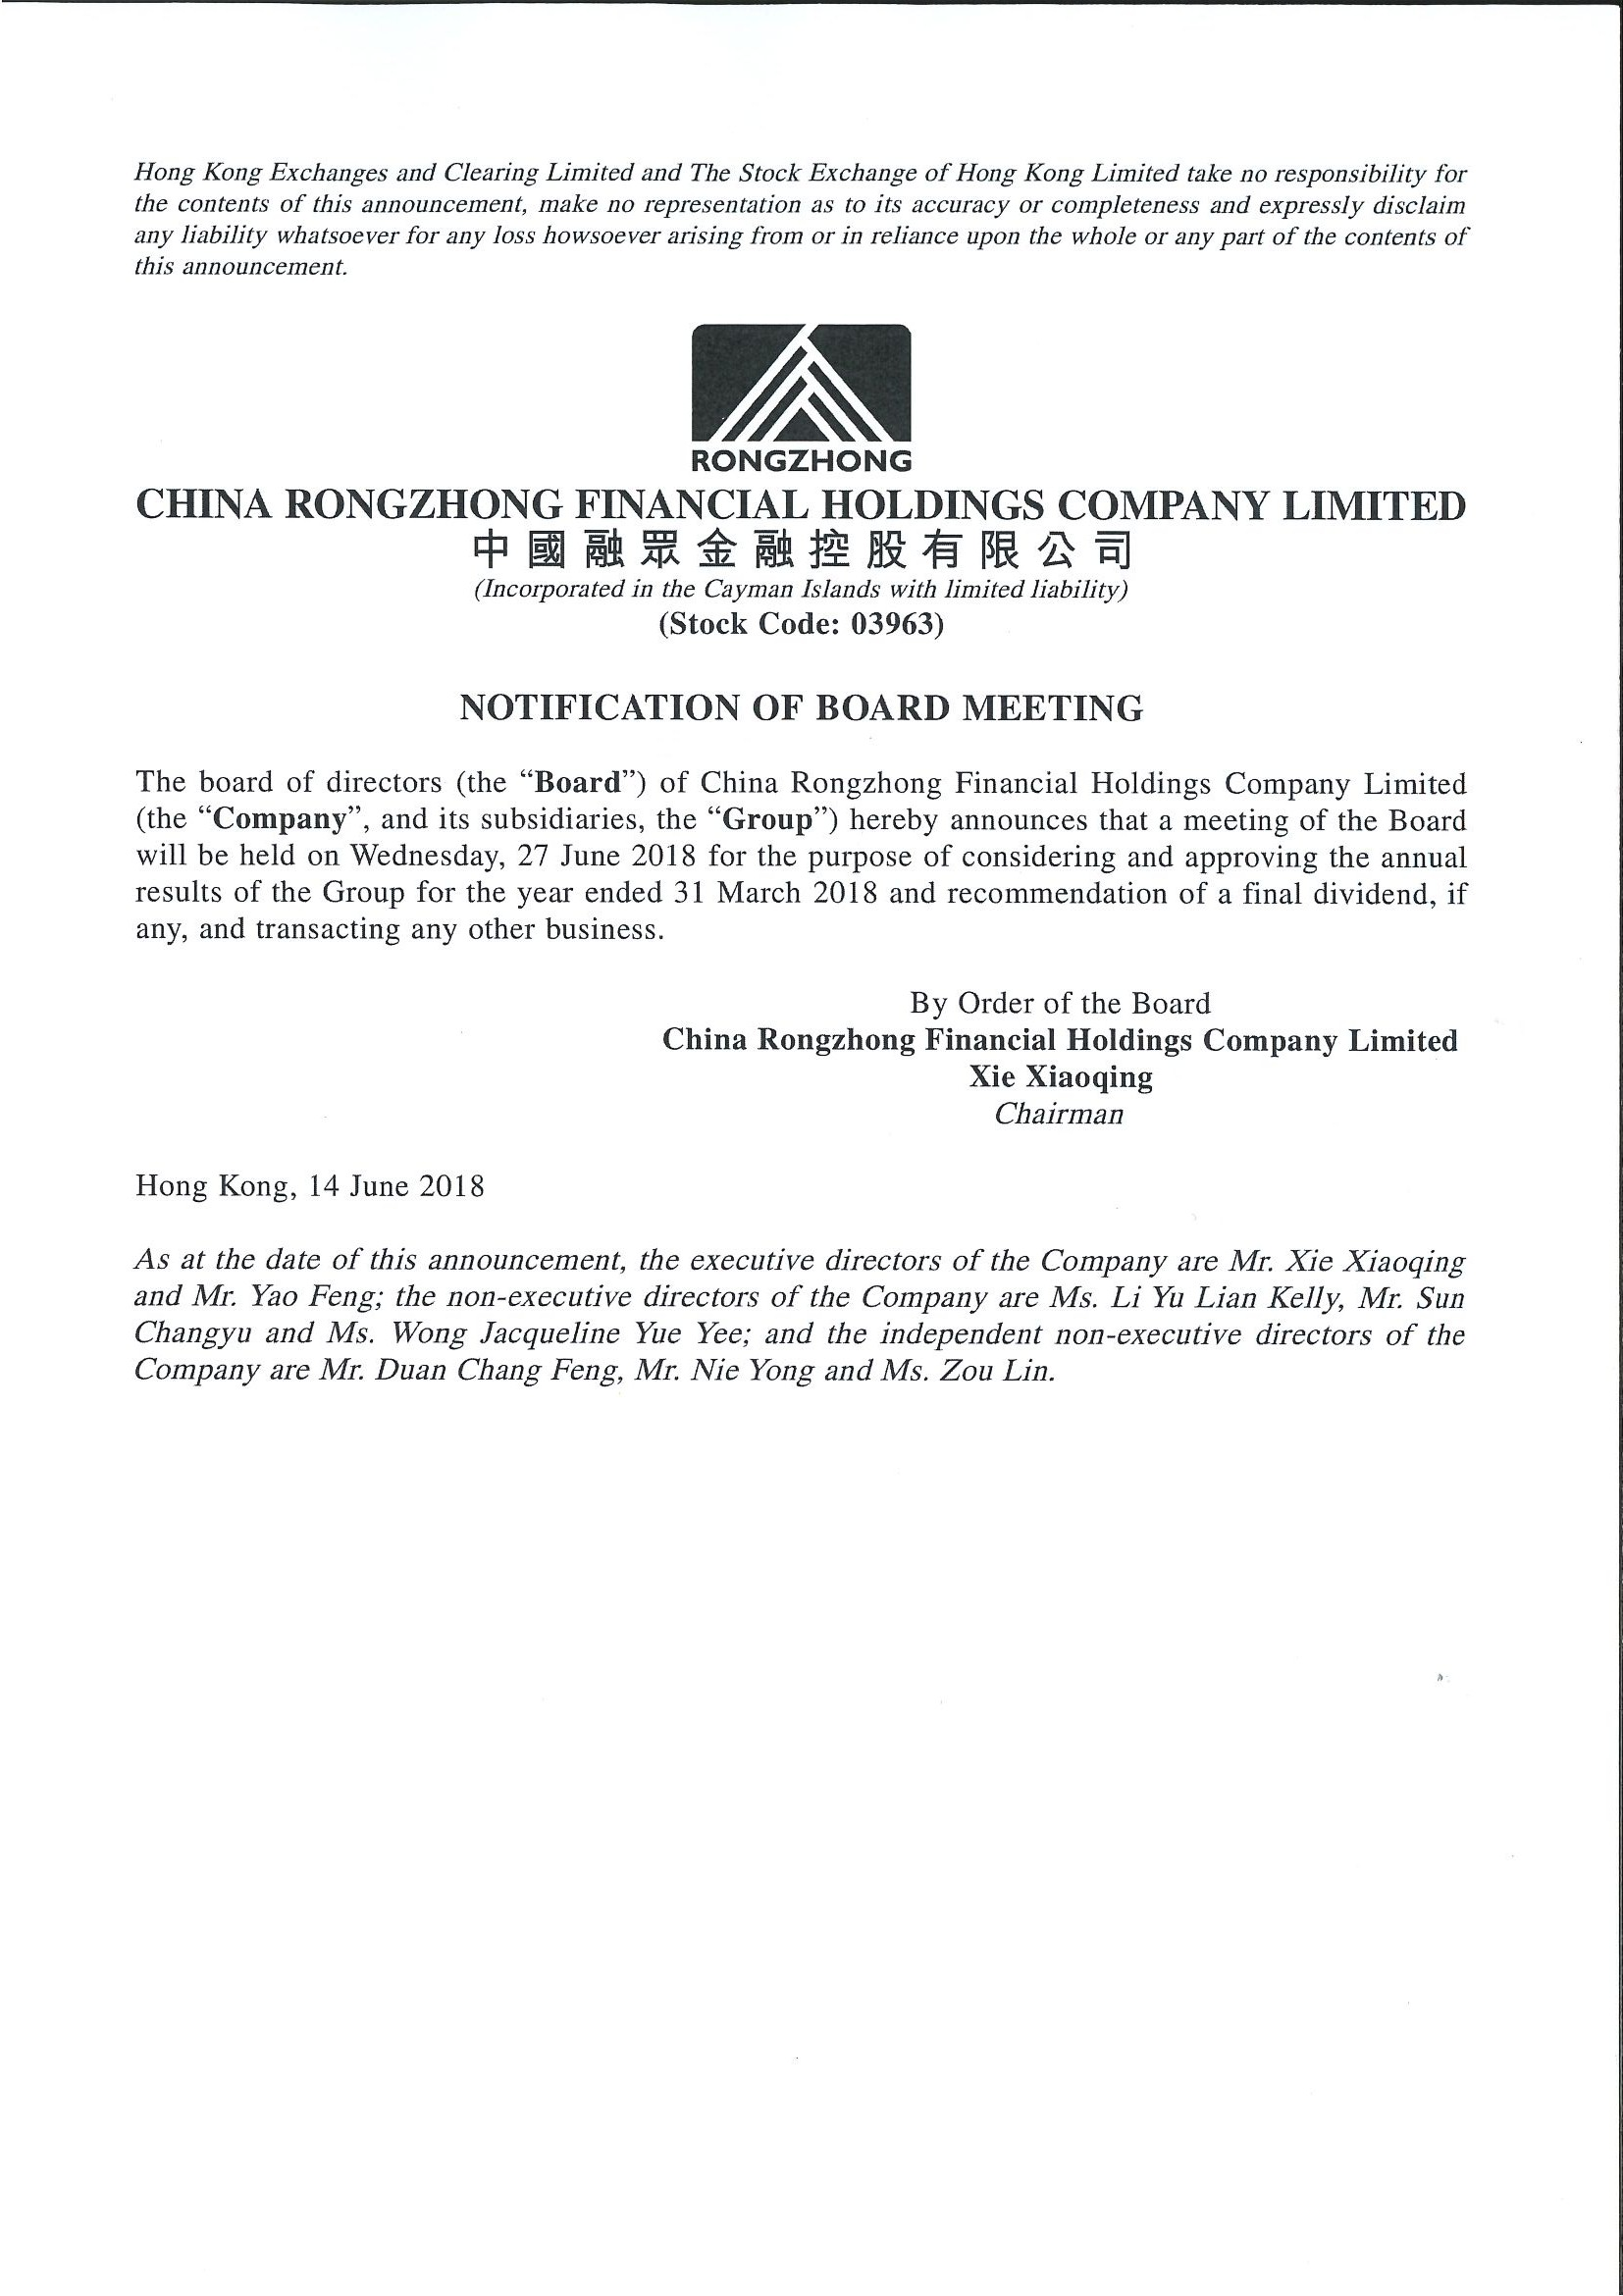 Announcements and Notices - [Date of Board Meeting]